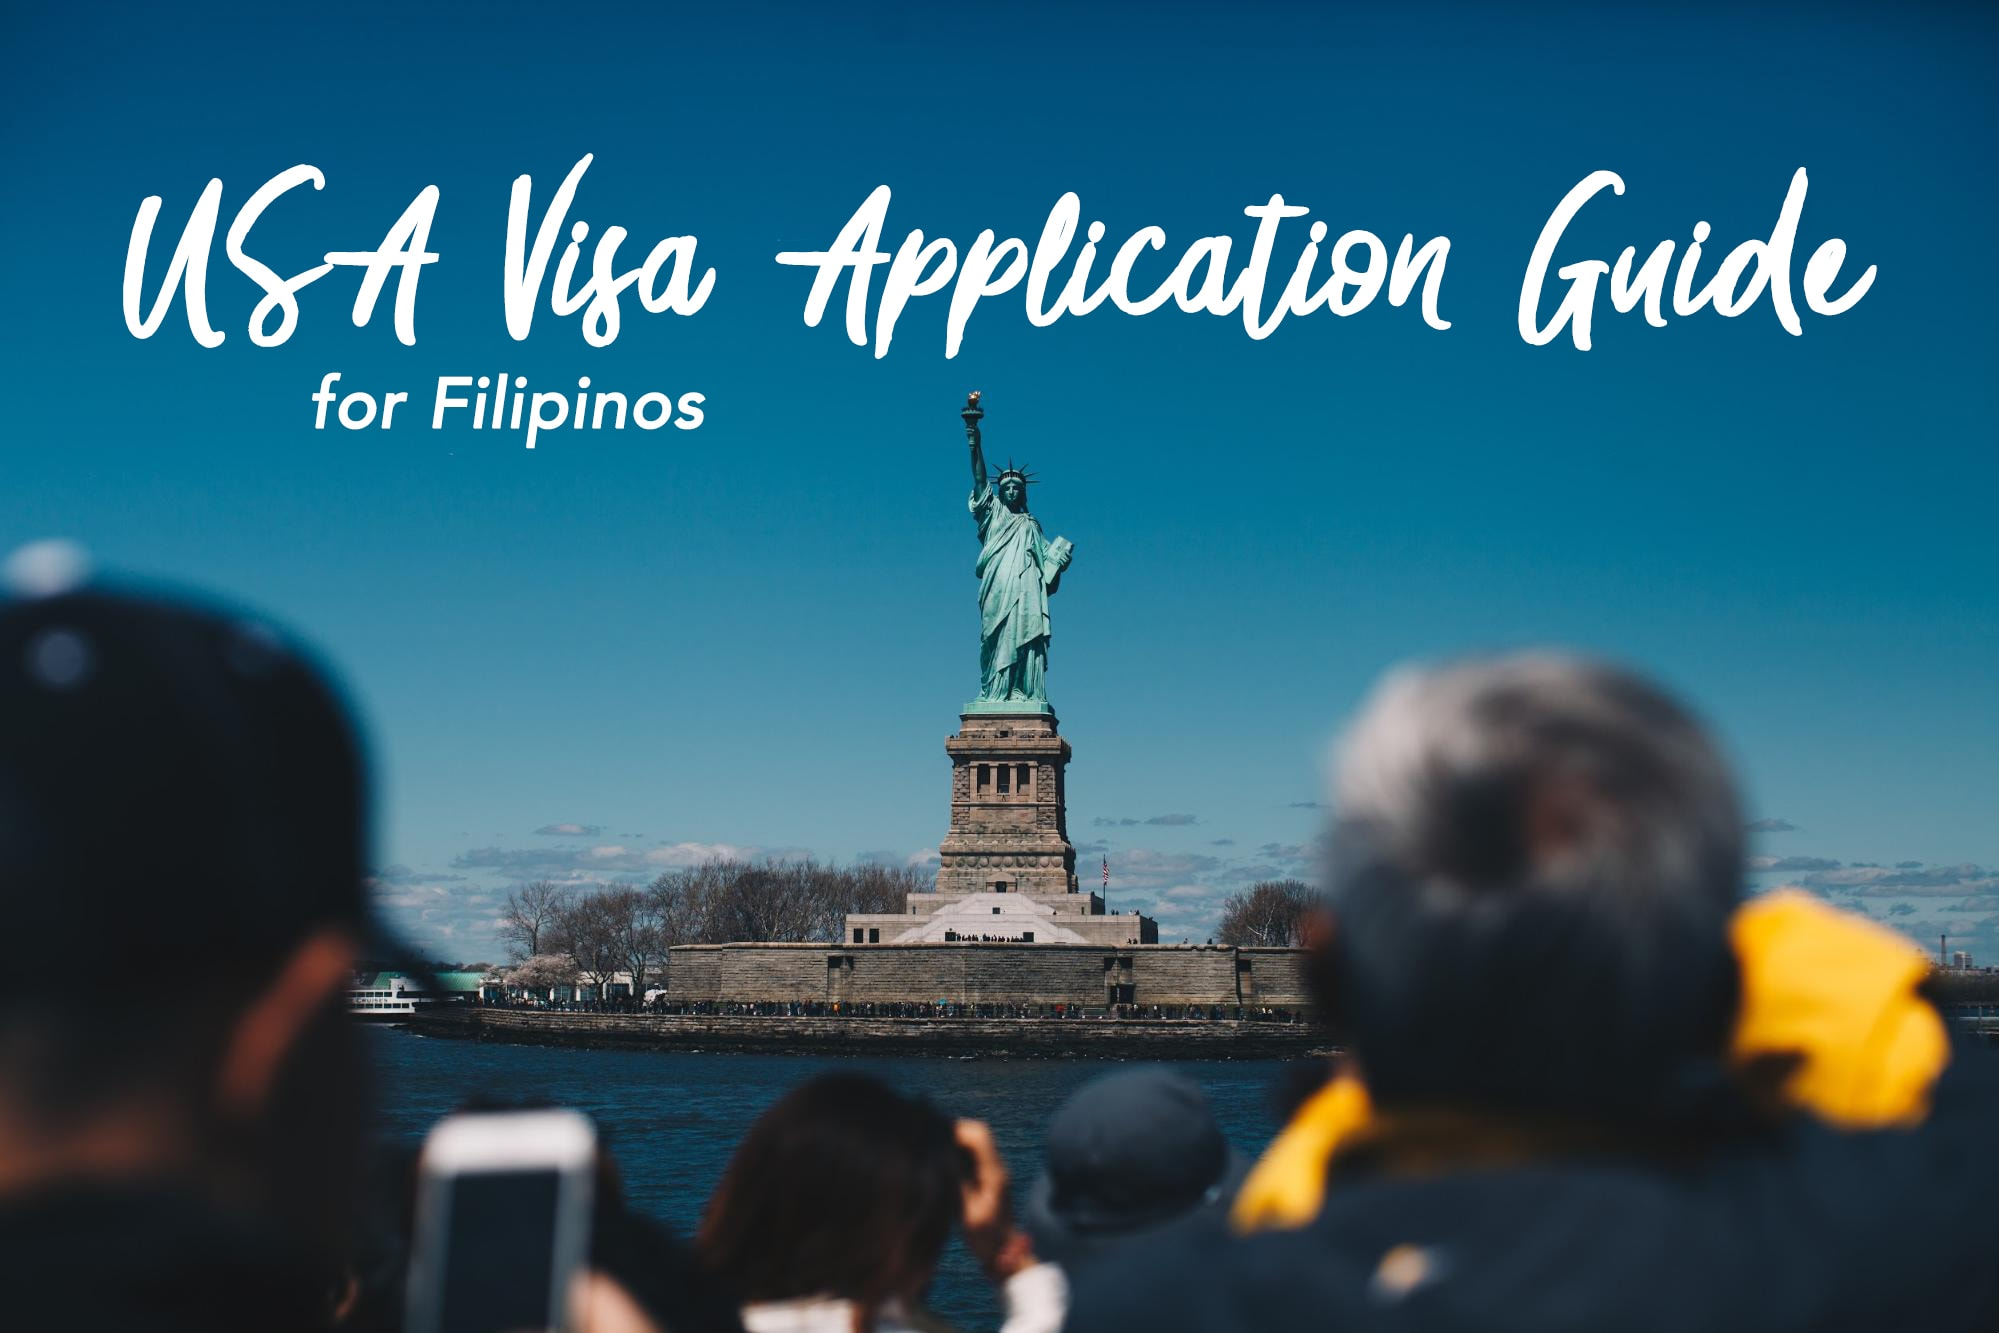 usa visa guide filipinos